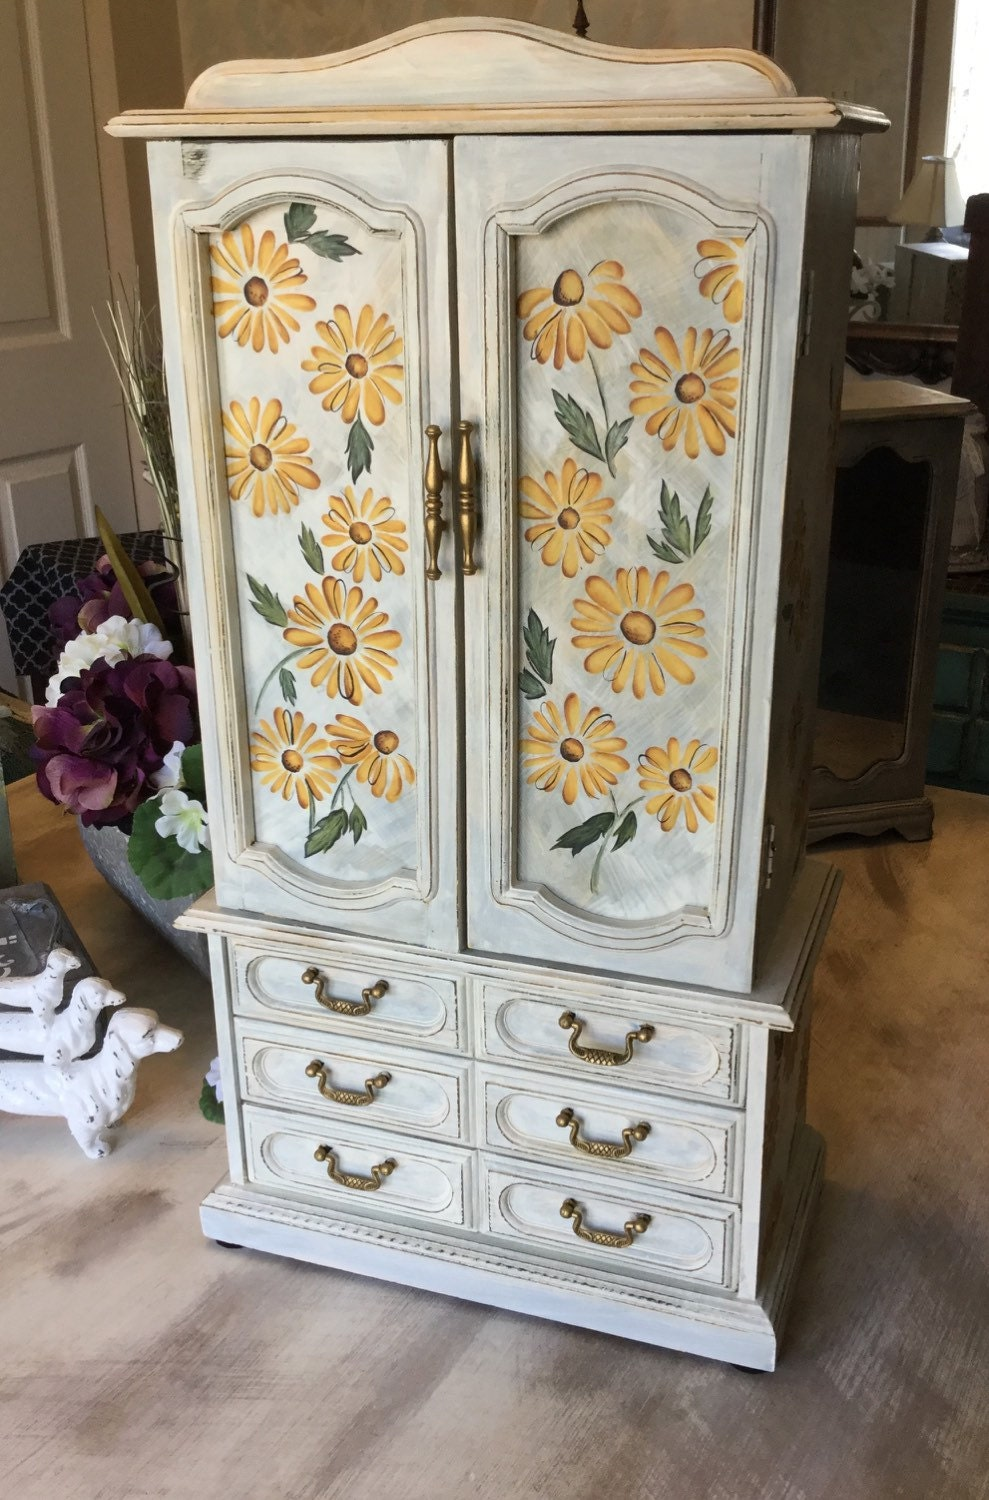 vintage shabby chic jewelry armoire upcycled wooden painted. Black Bedroom Furniture Sets. Home Design Ideas